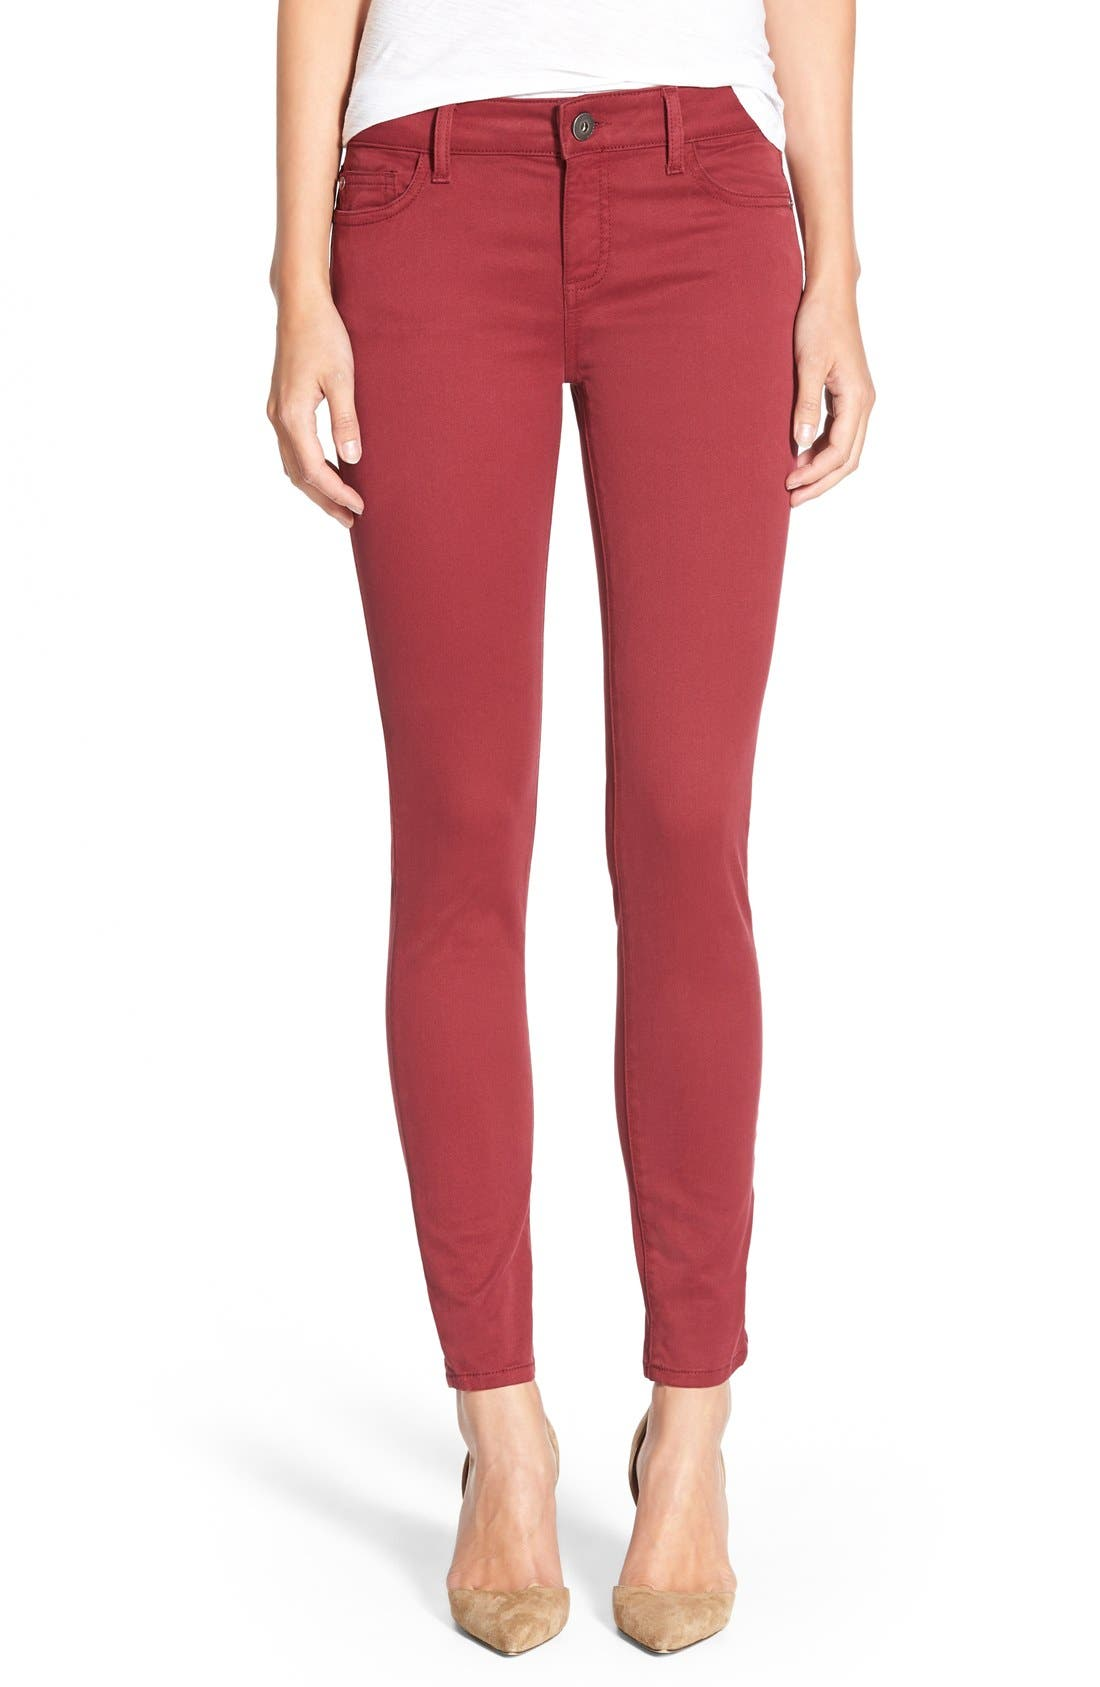 Main Image - DL1961 'Margaux' Instasculpt Ankle Jeans (Ruby)